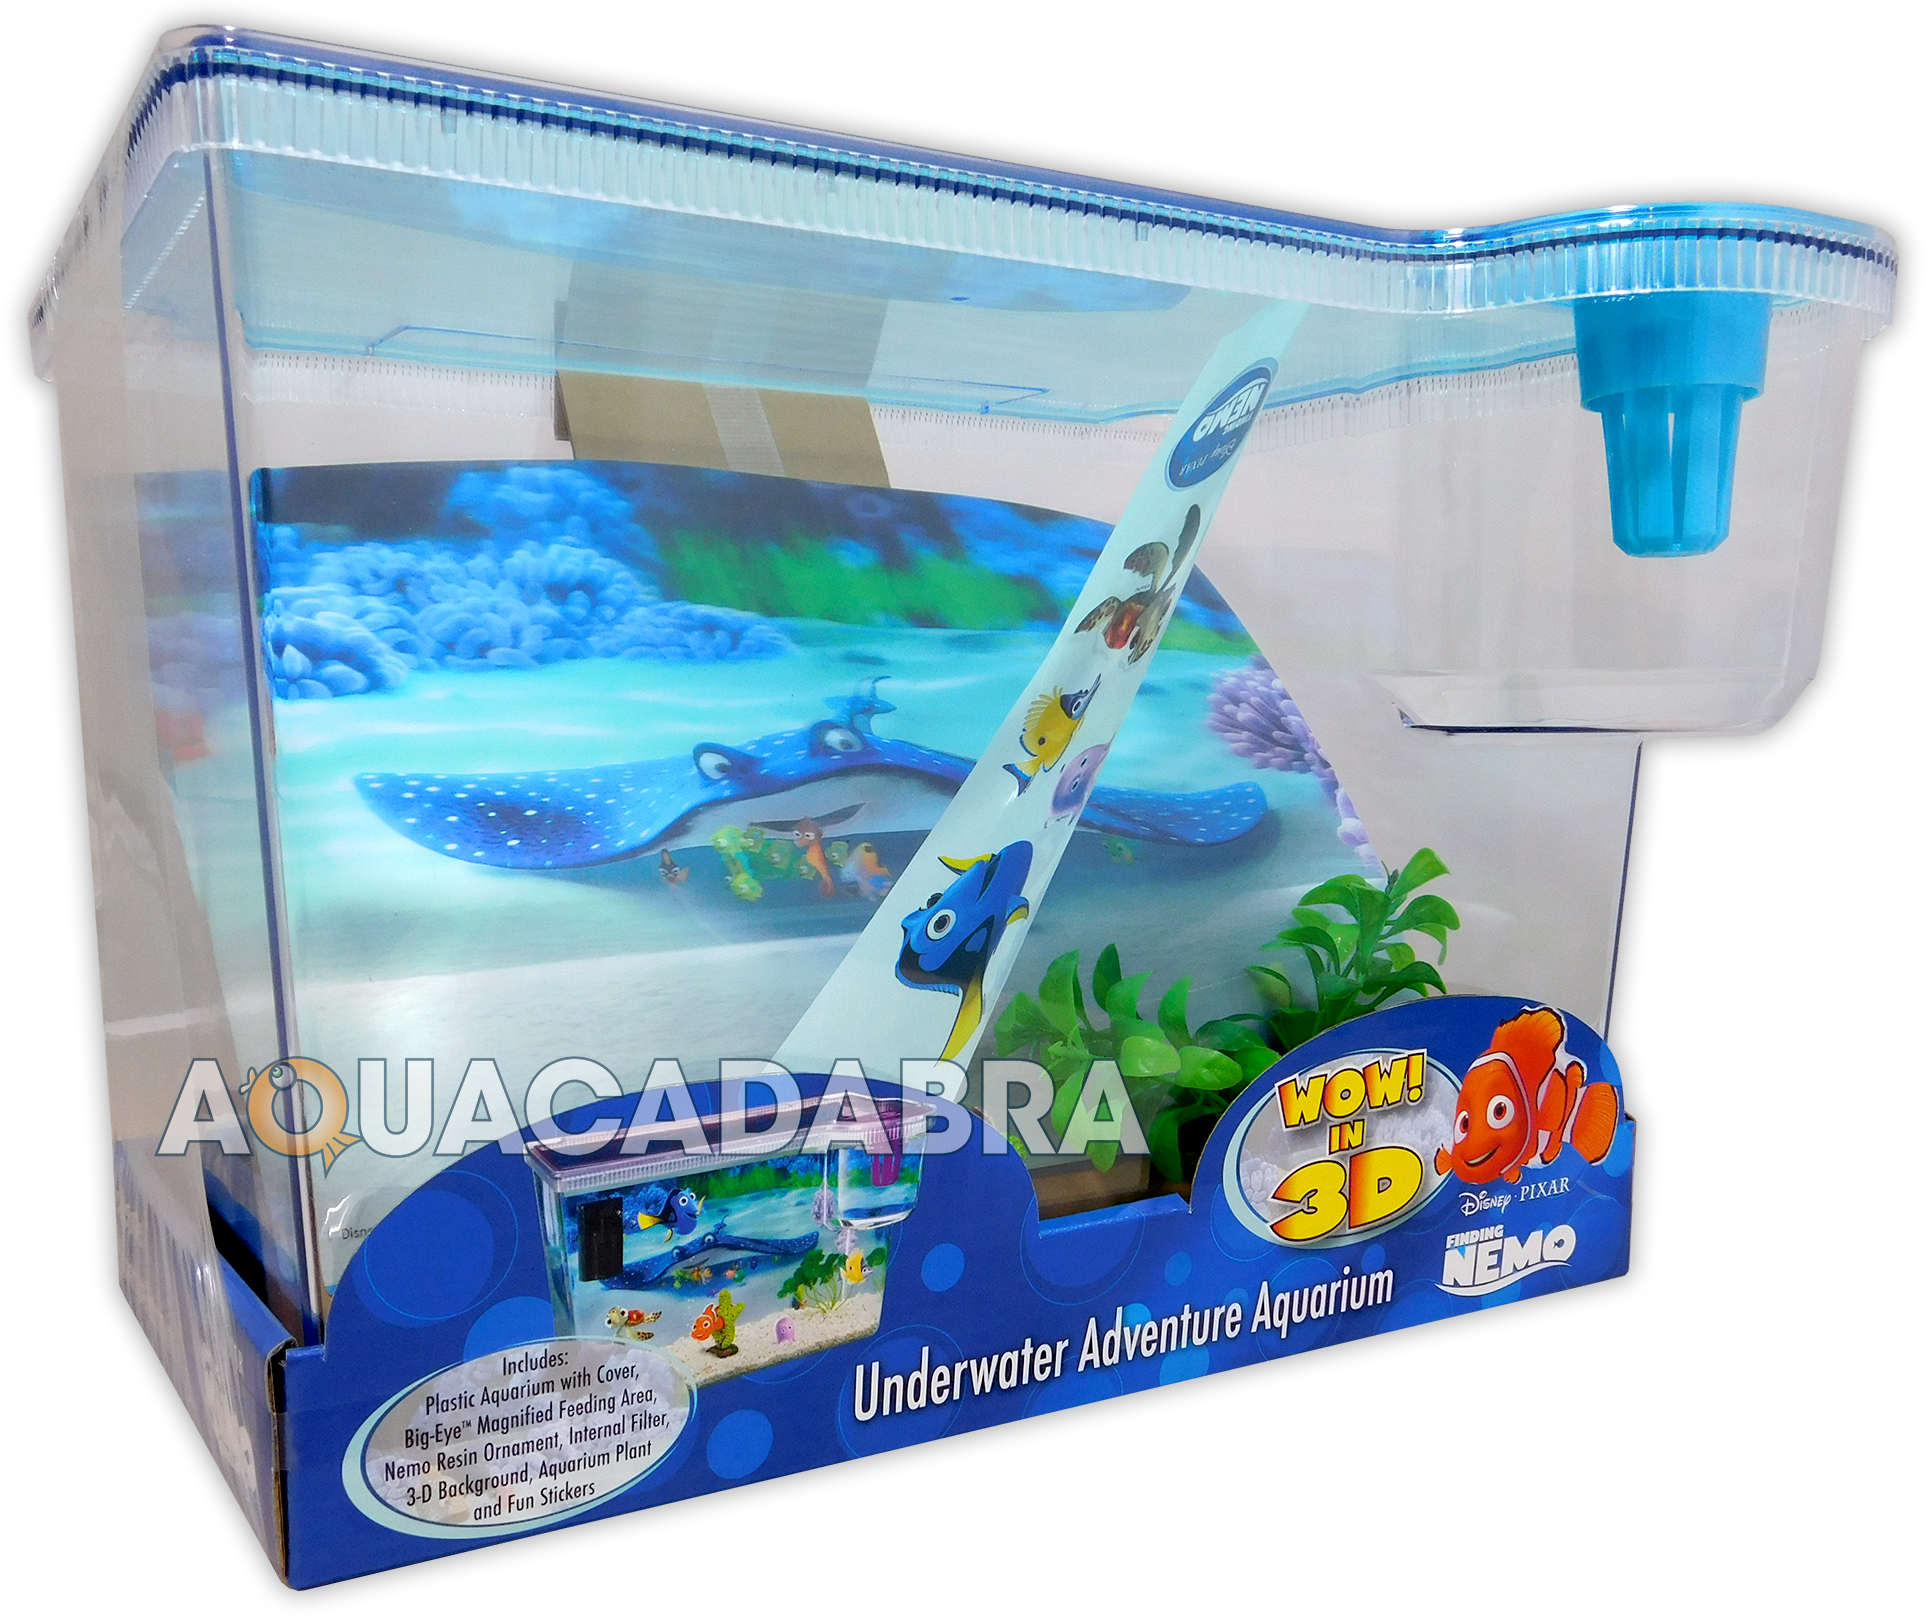 Fish in nemo aquarium - Finding Nemo 3d Aquarium 15l First Fish Tank Dory Disney With Background Lid